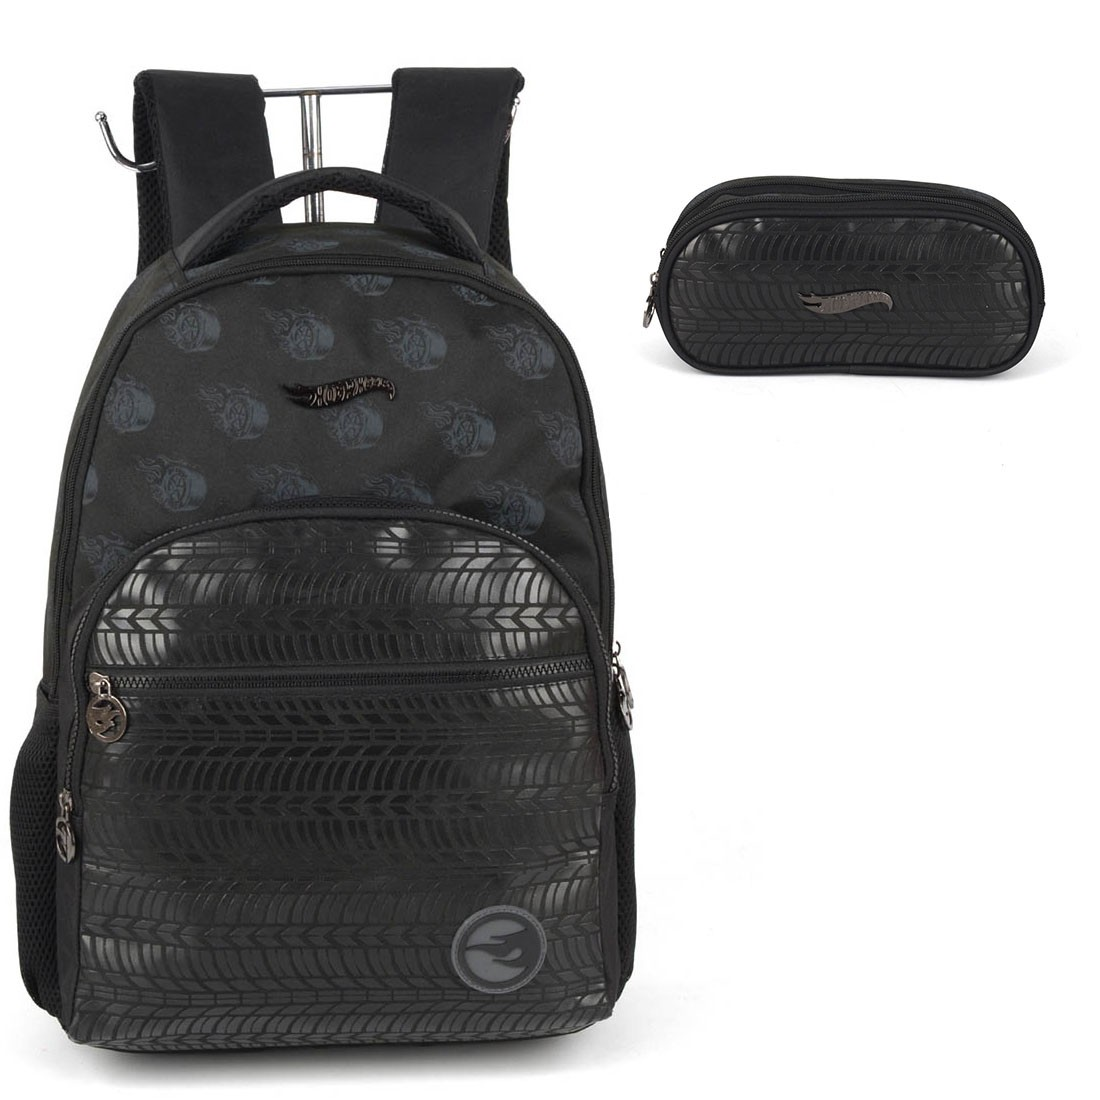 Mochila Infantil Hot Wheels com Estojo